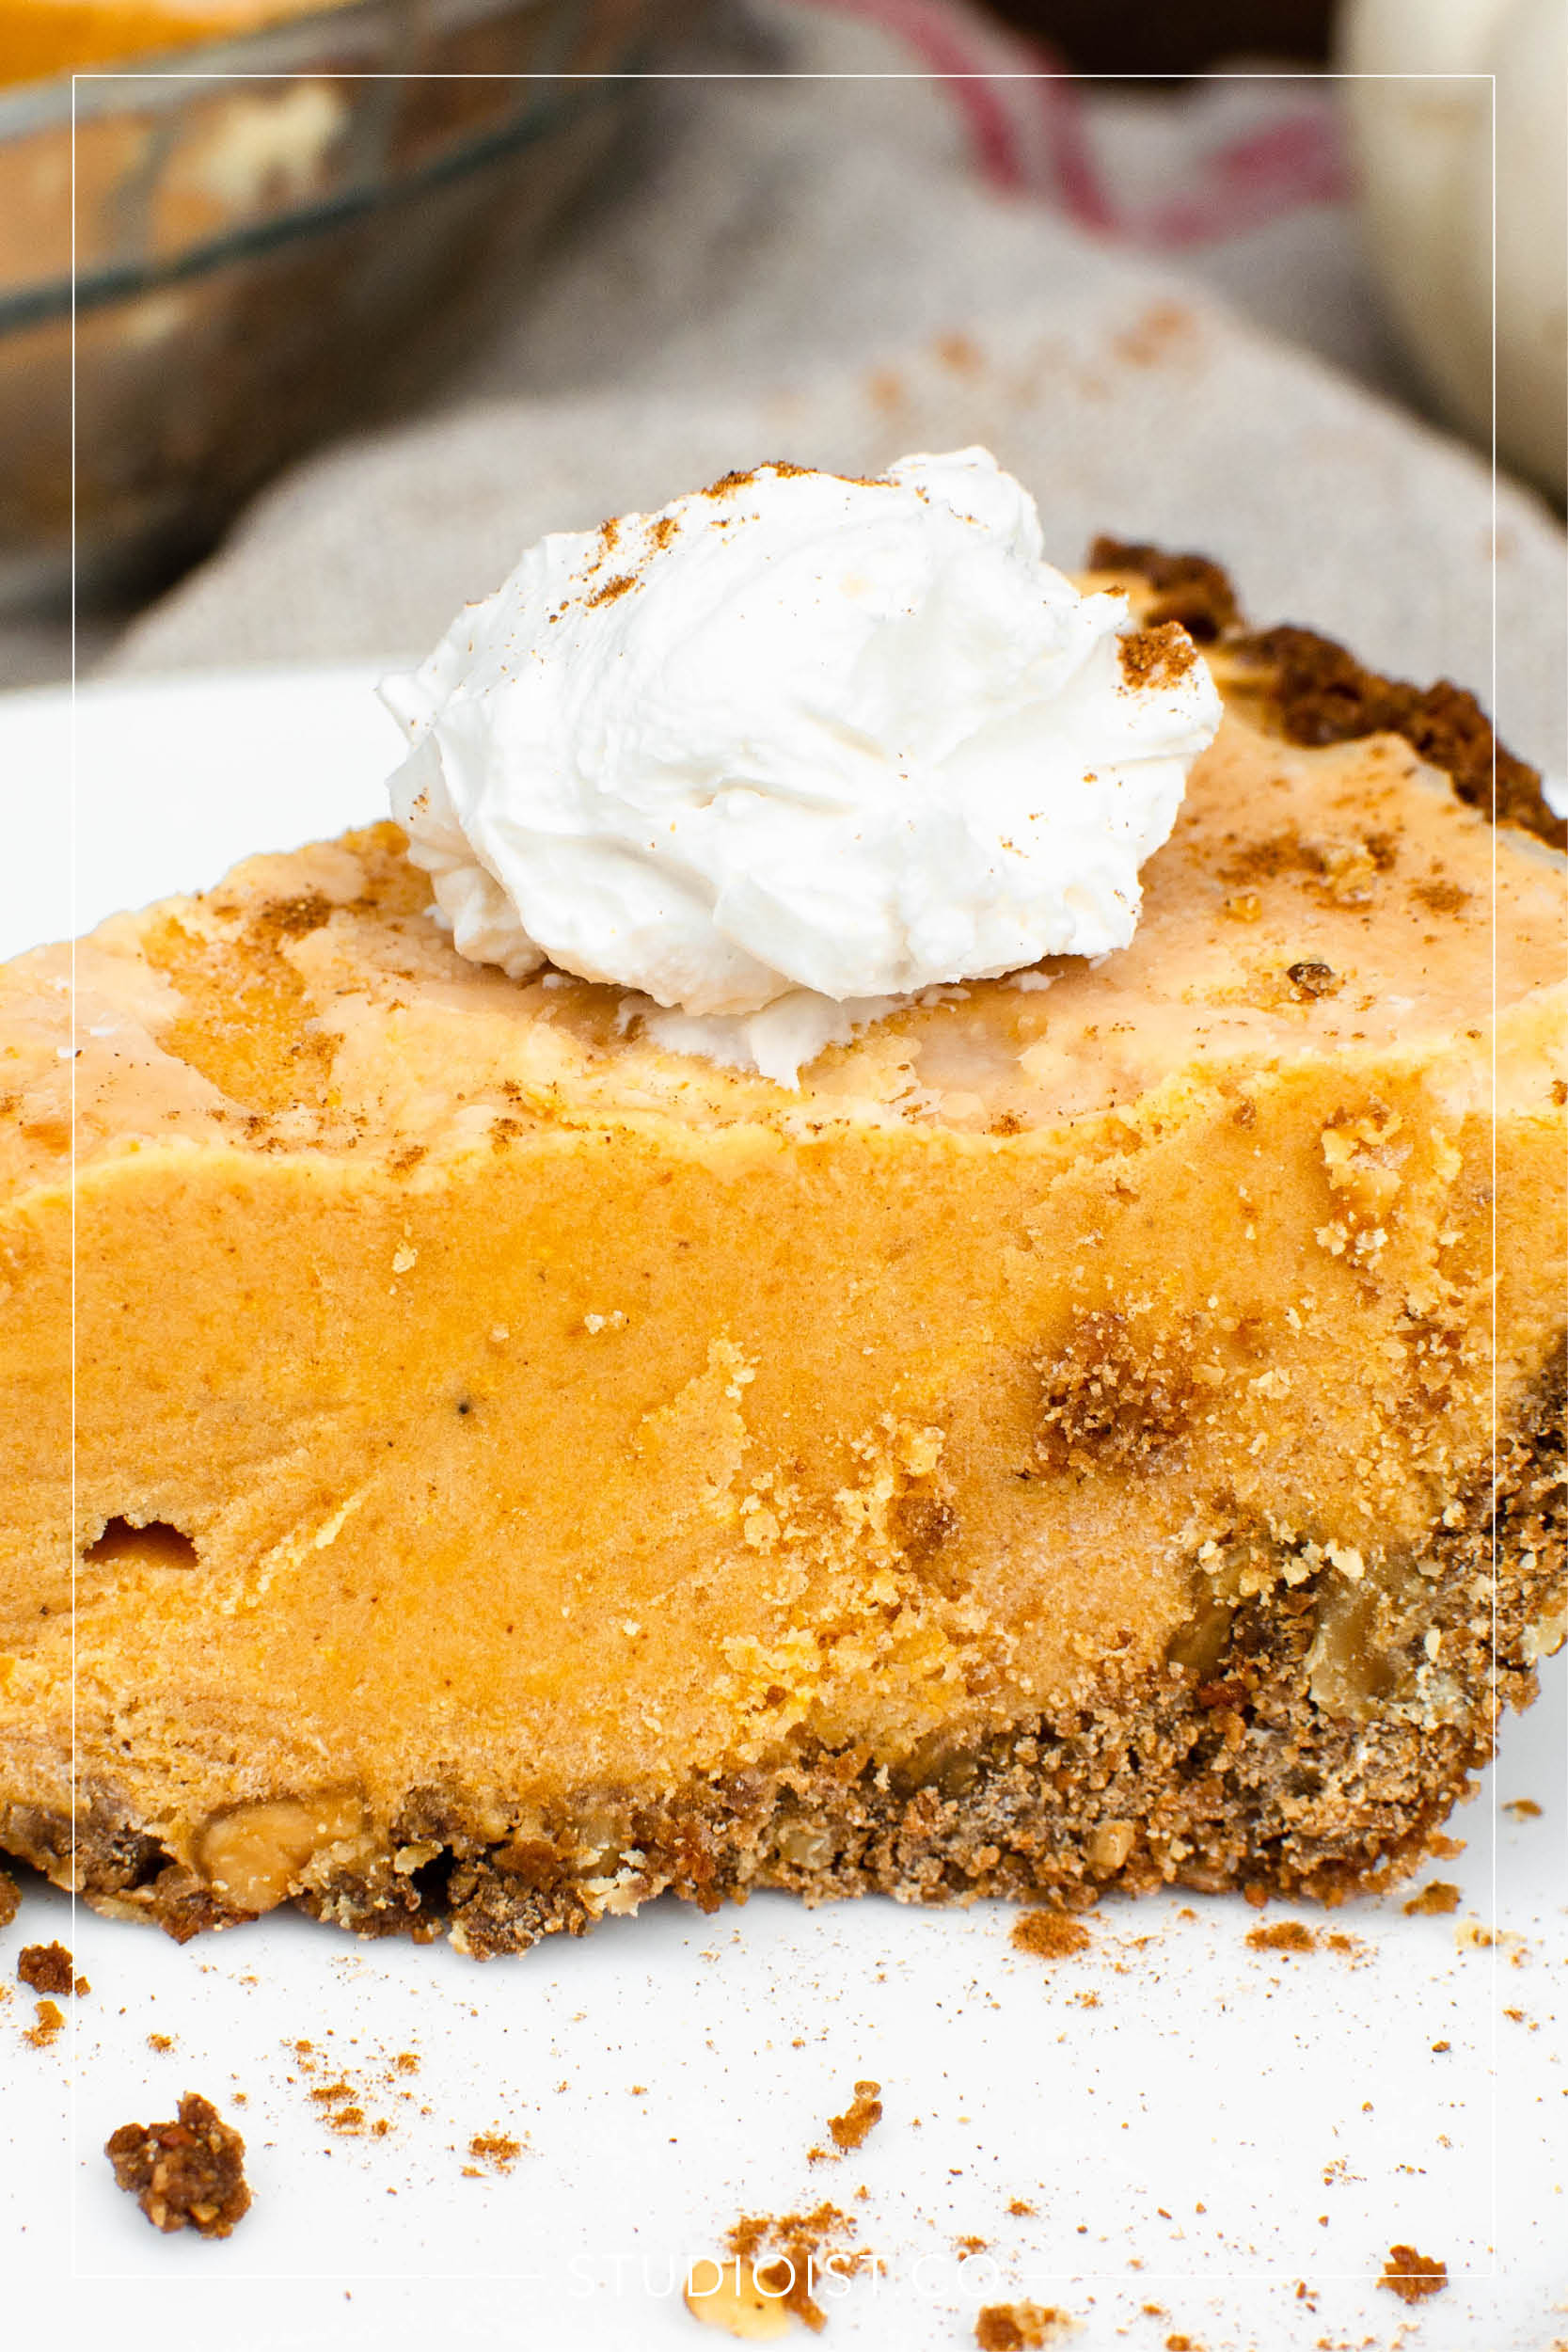 Studioist_Pinterest Design_Pumpkin Ice Cream Pie3.jpg